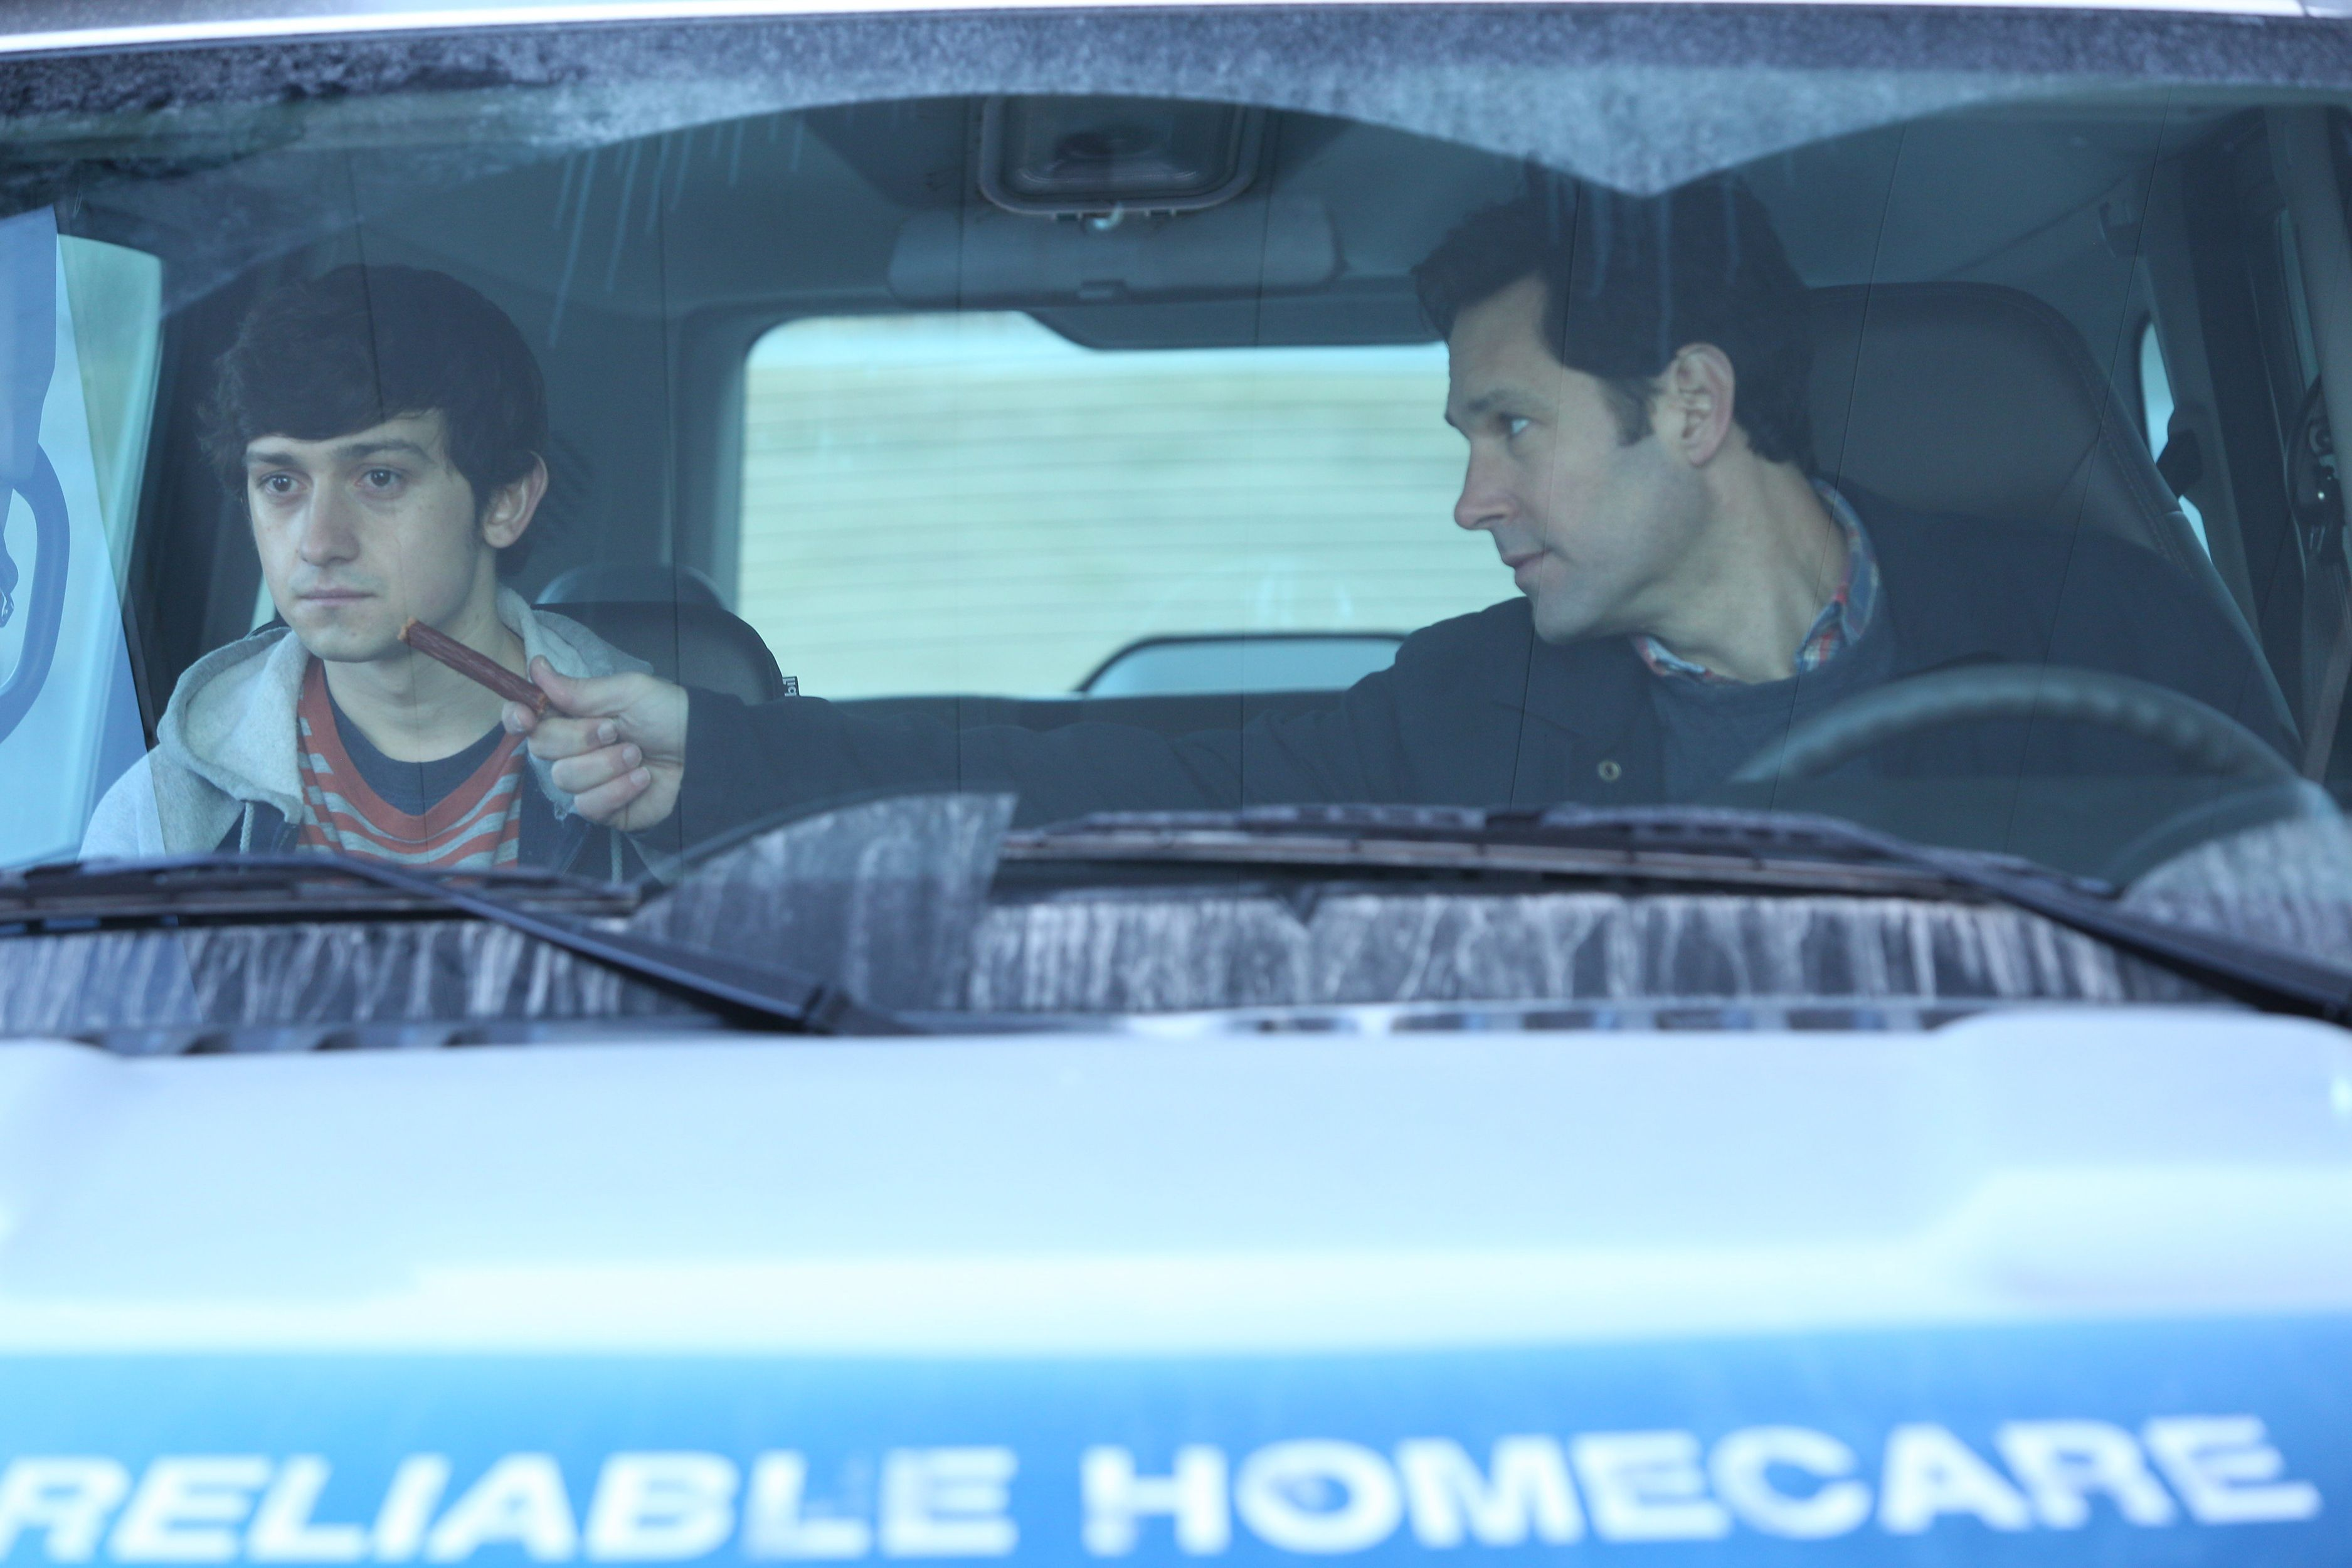 Check out Paul Rudd in The Fundamentals of Caring